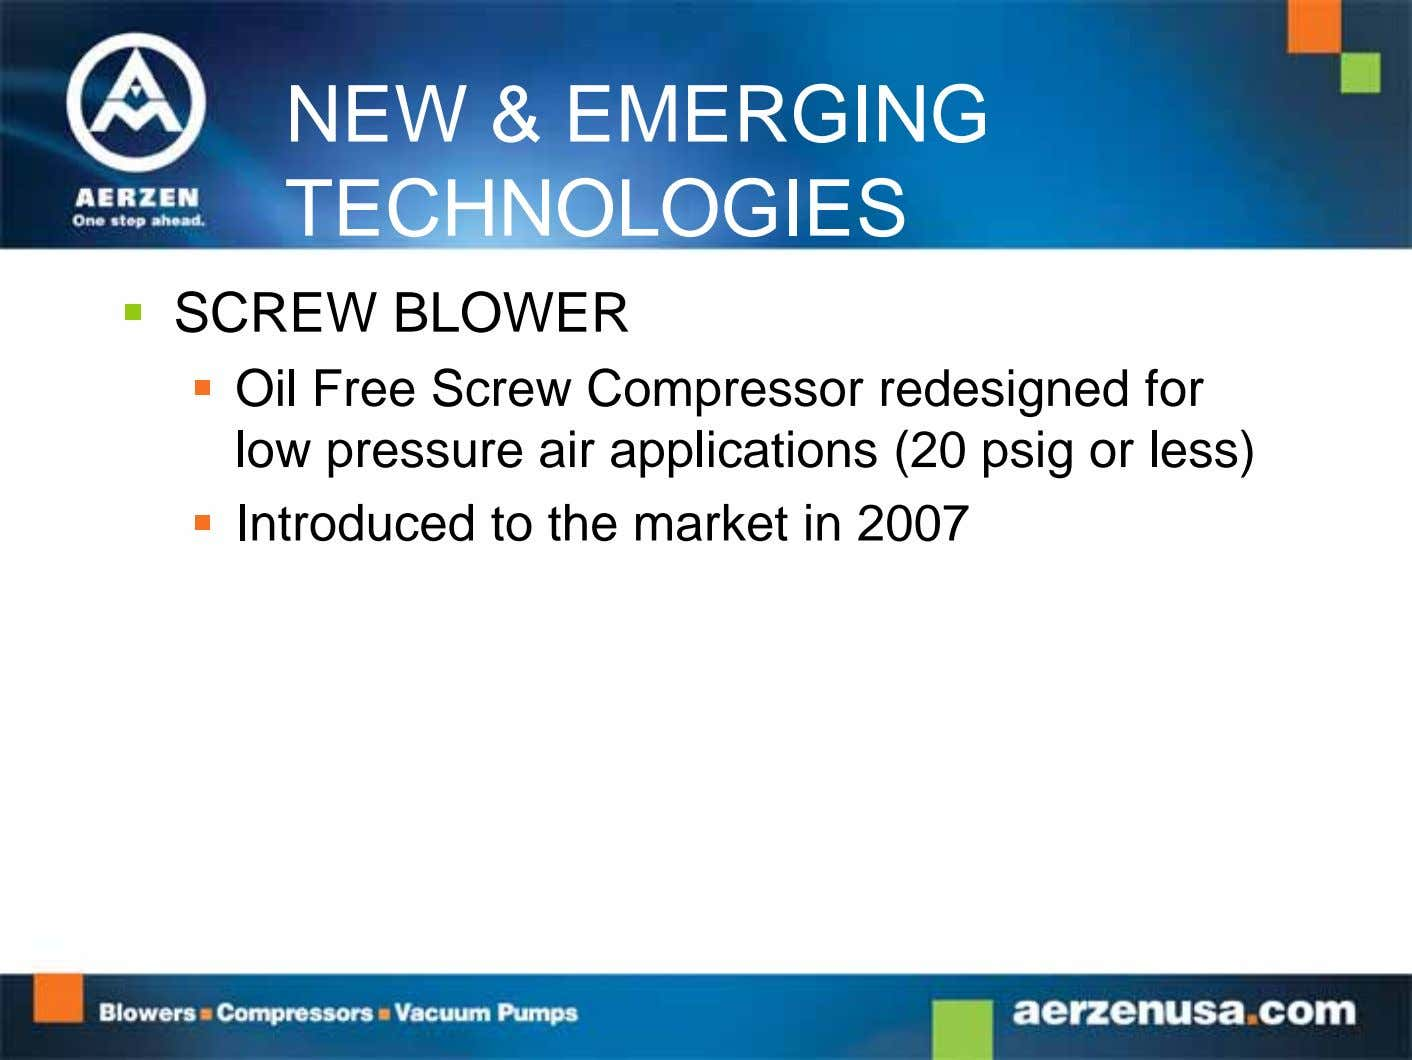 NEW & EMERGING TECHNOLOGIES  SCREW BLOWER  Oil Free Screw Compressor redesigned for low